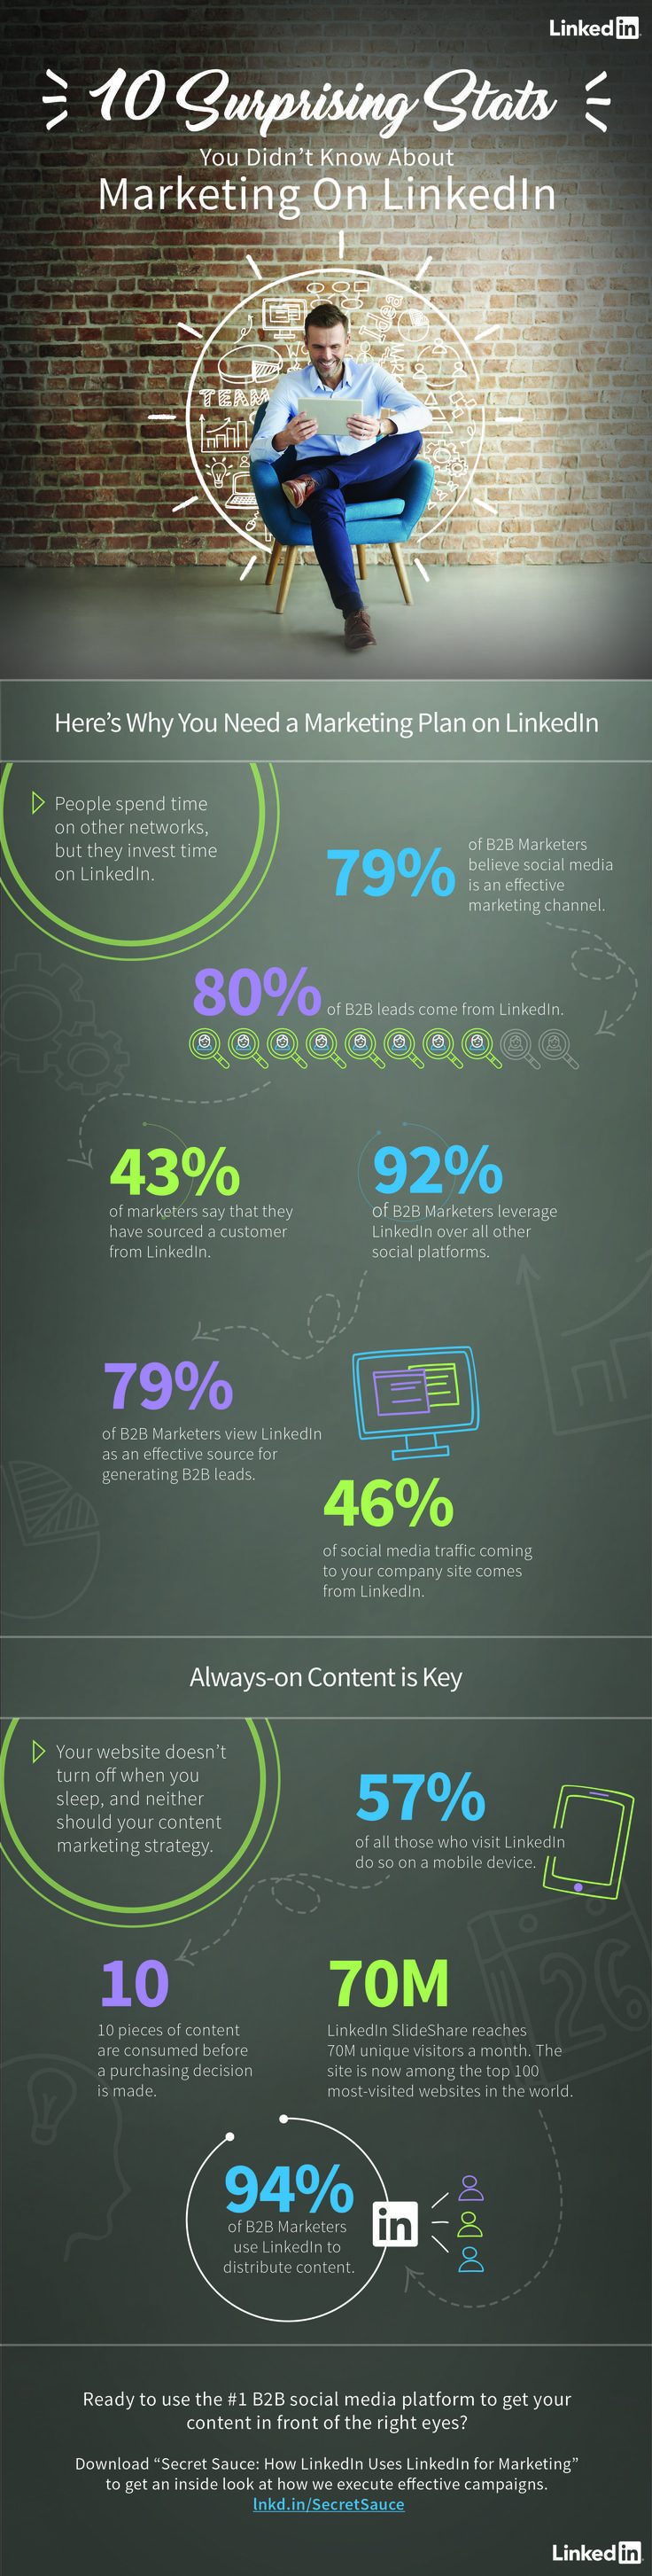 10 Surprising Stats You Didn't Know about Marketing on #LinkedIn - #infographic #socialmedia